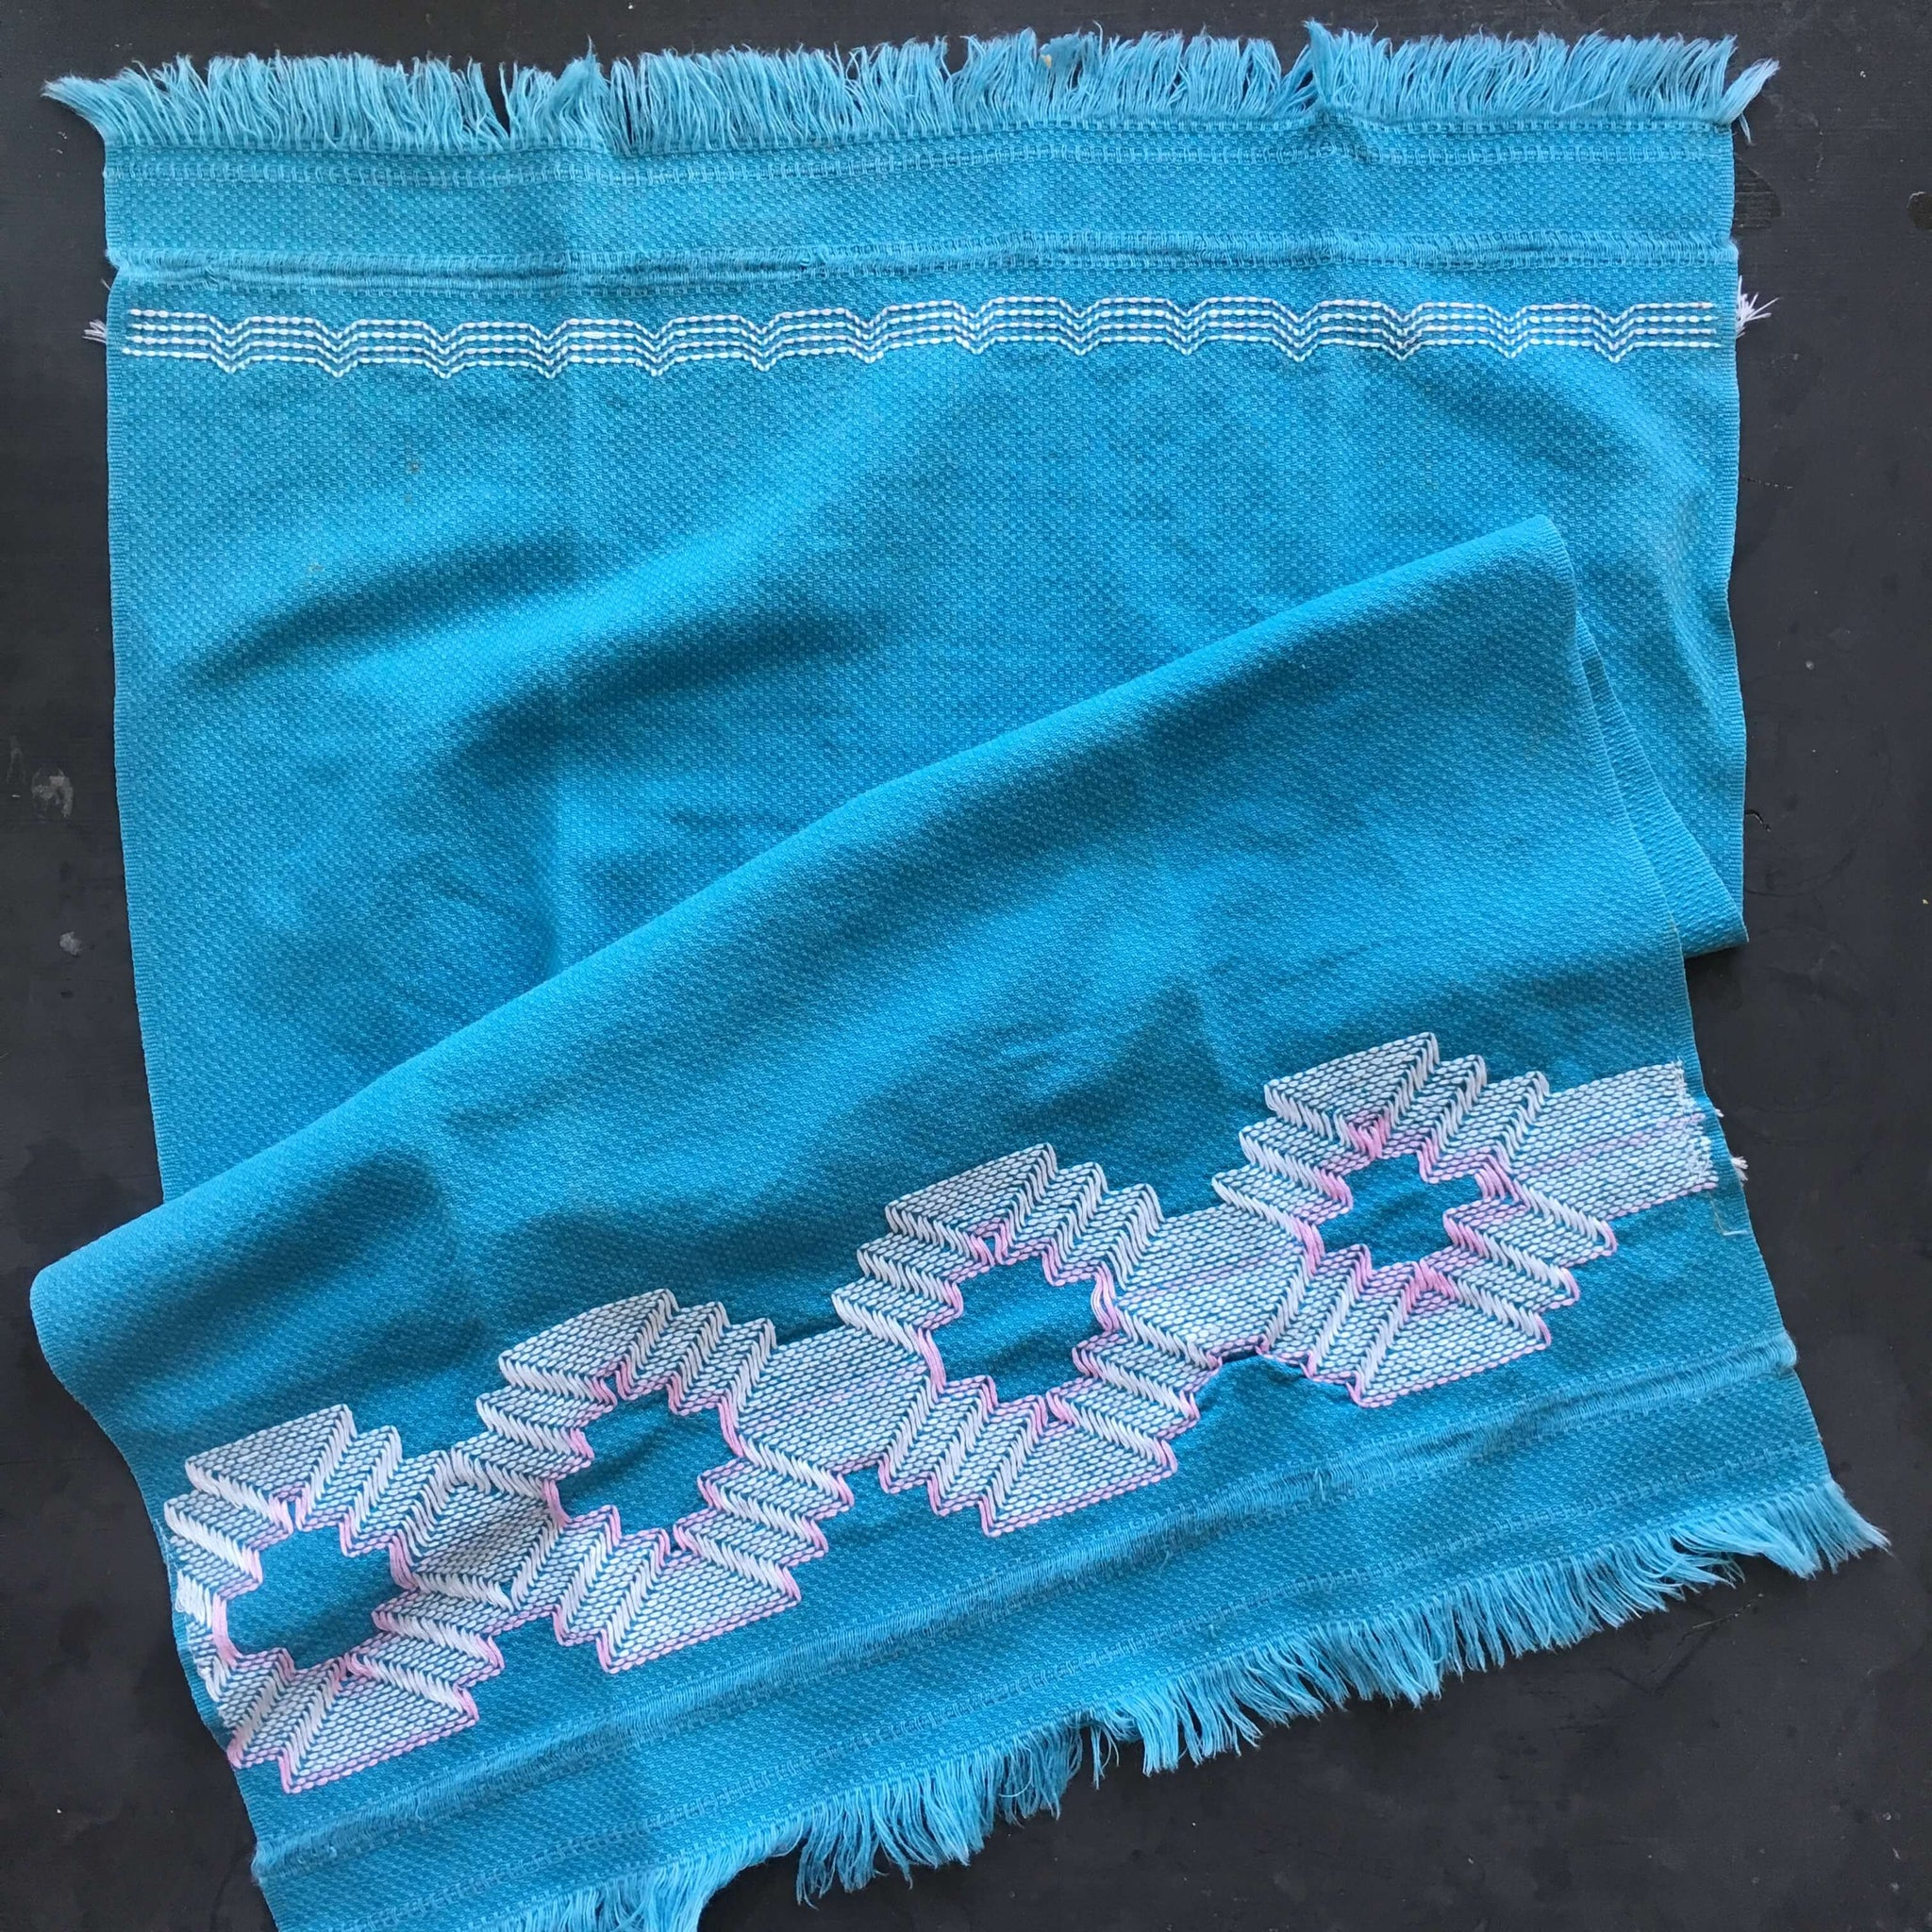 Vintage Teal Blue Cotton Kitchen Towel  with Embroidered Boho Design